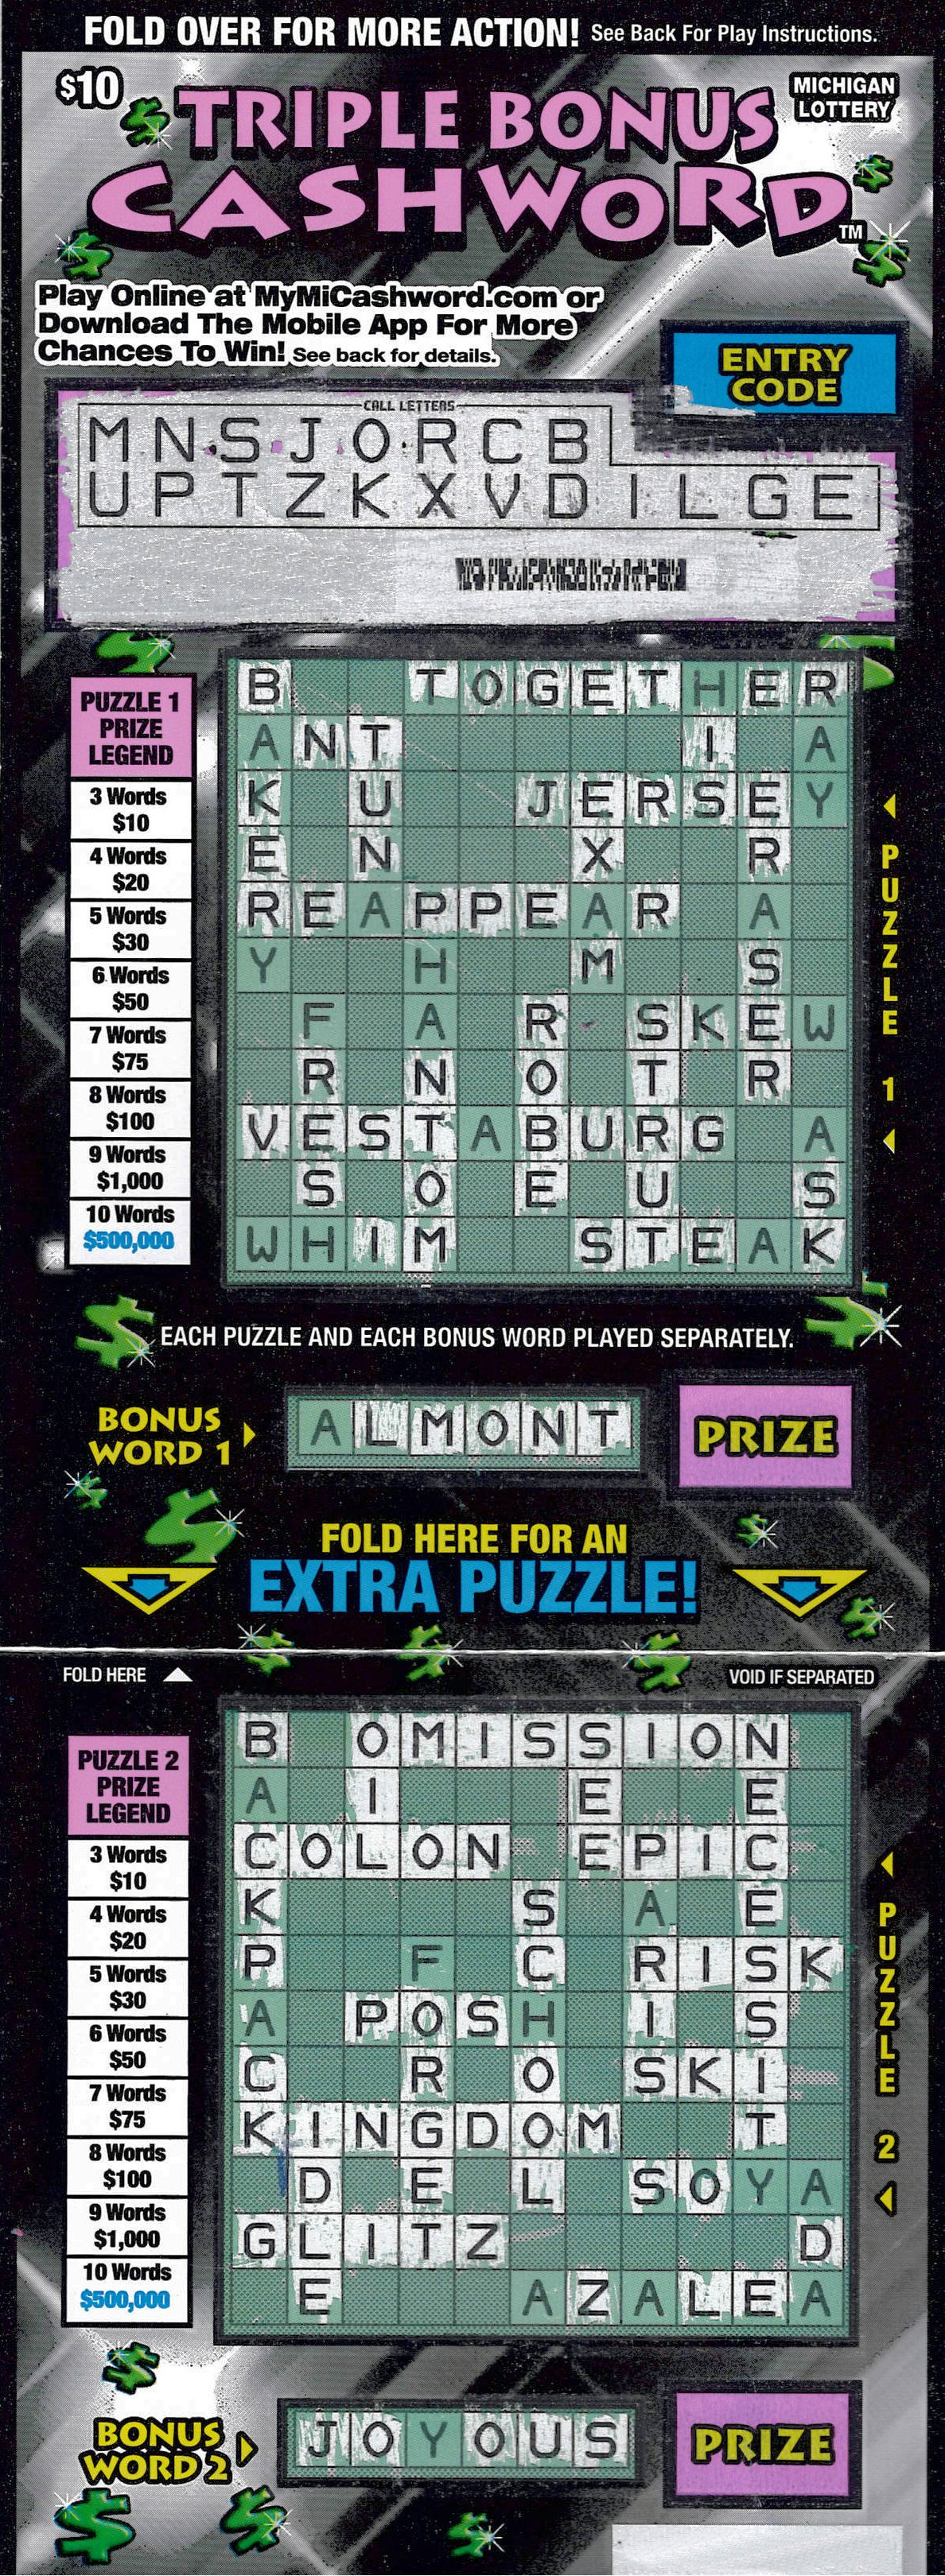 Michigan Lottery Connect | Page 13